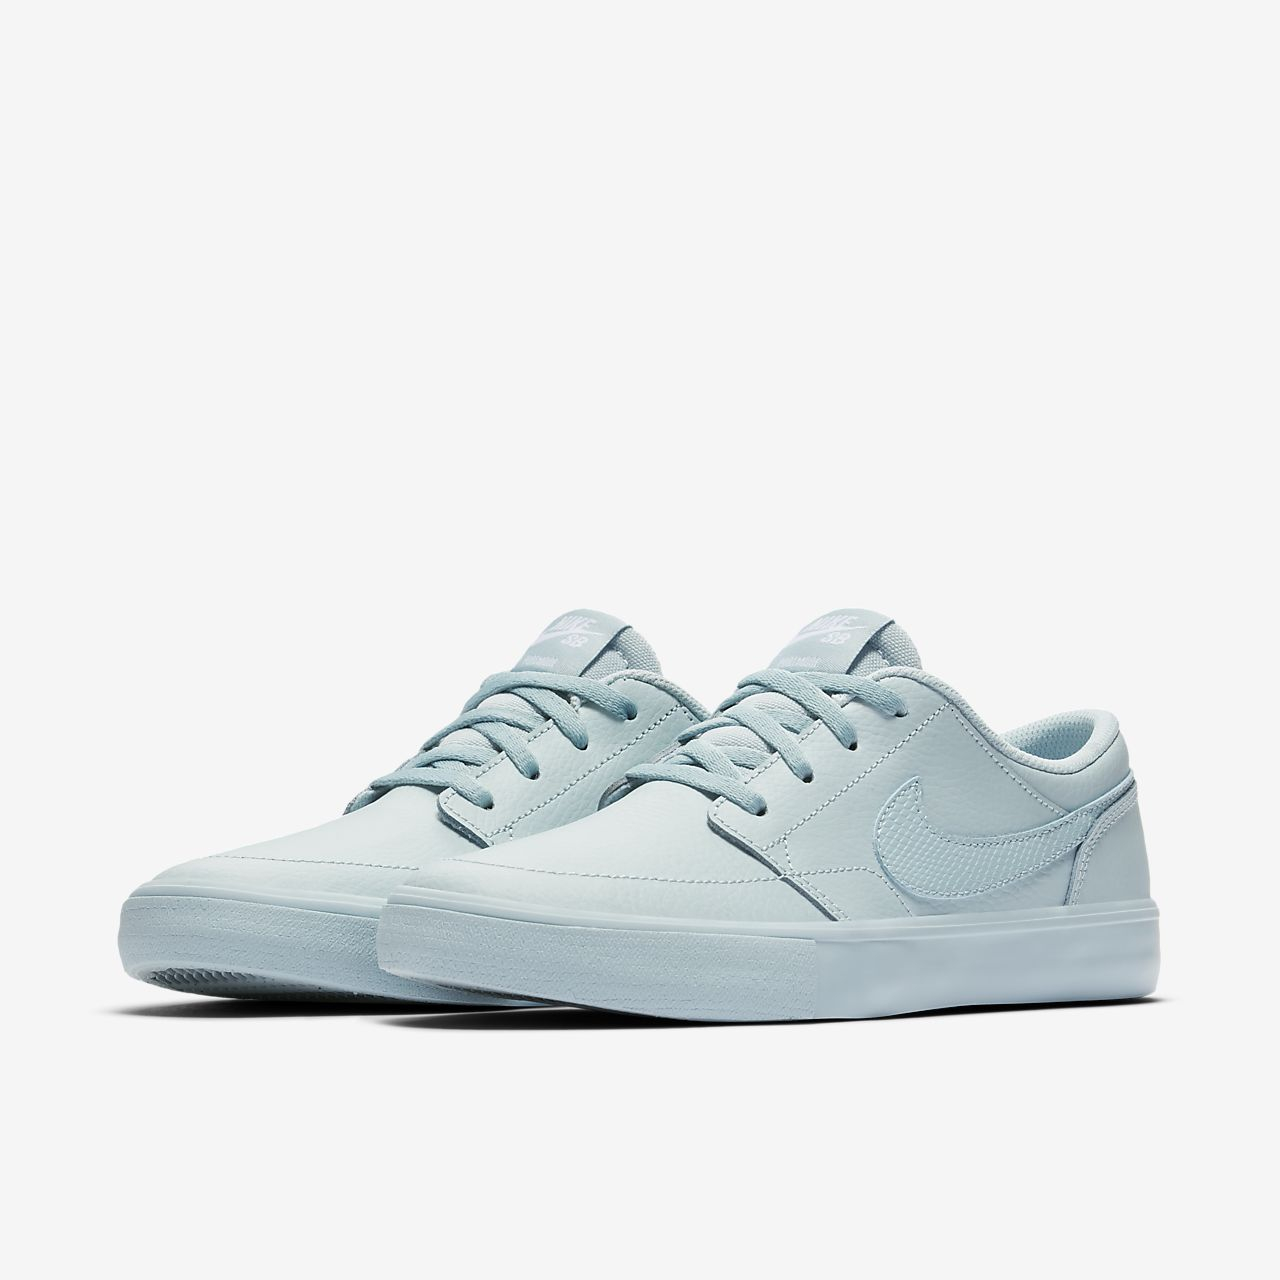 outlet popular for sale 2014 Nike SB Portmore II Women's ... Skate Shoes shipping discount sale ibrGfm